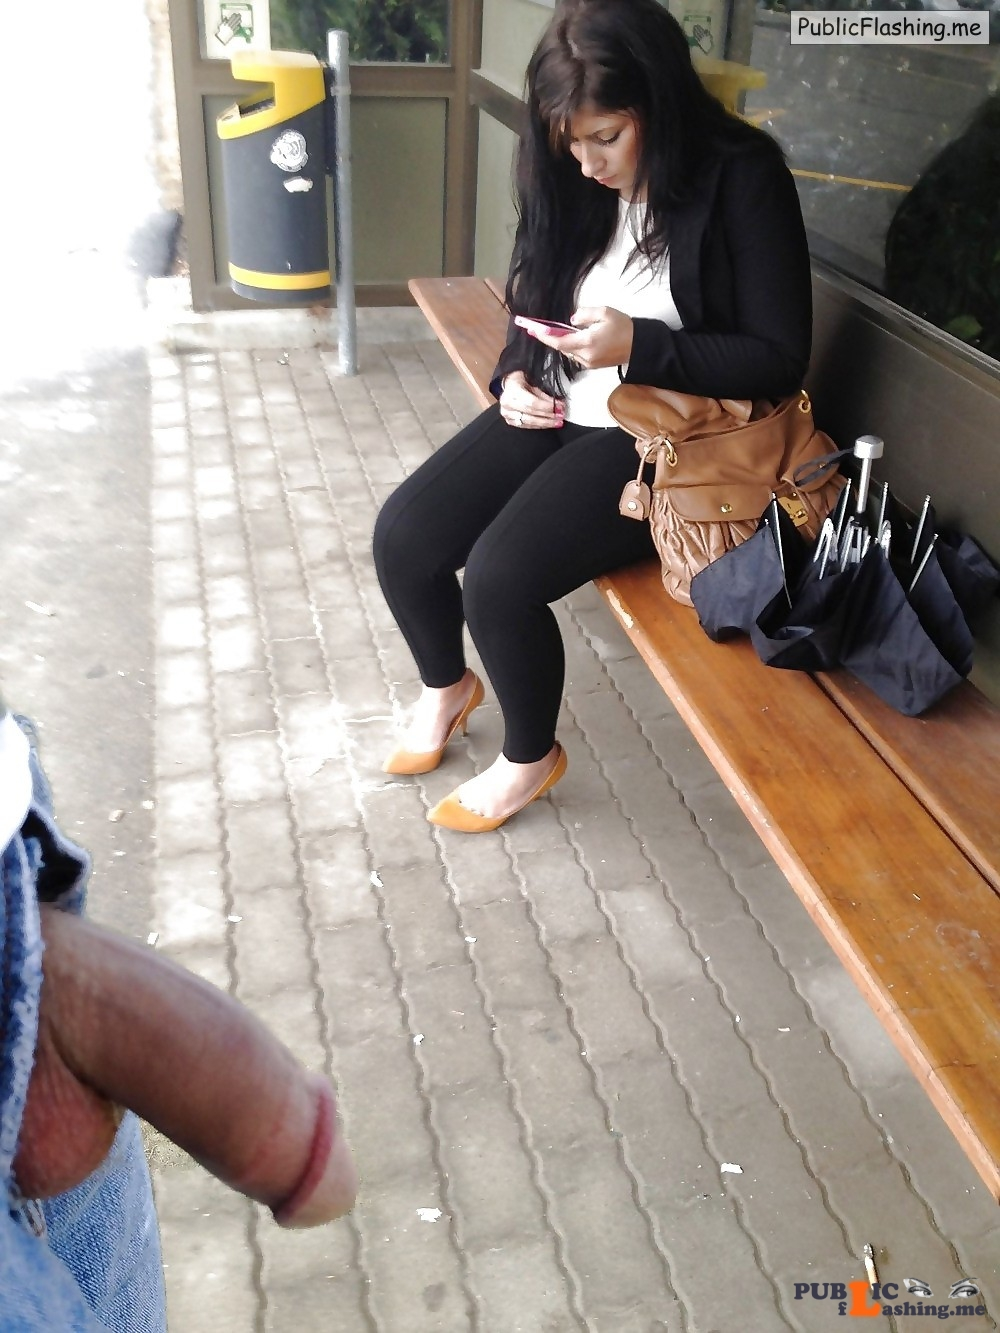 Dick flash pics on bus station